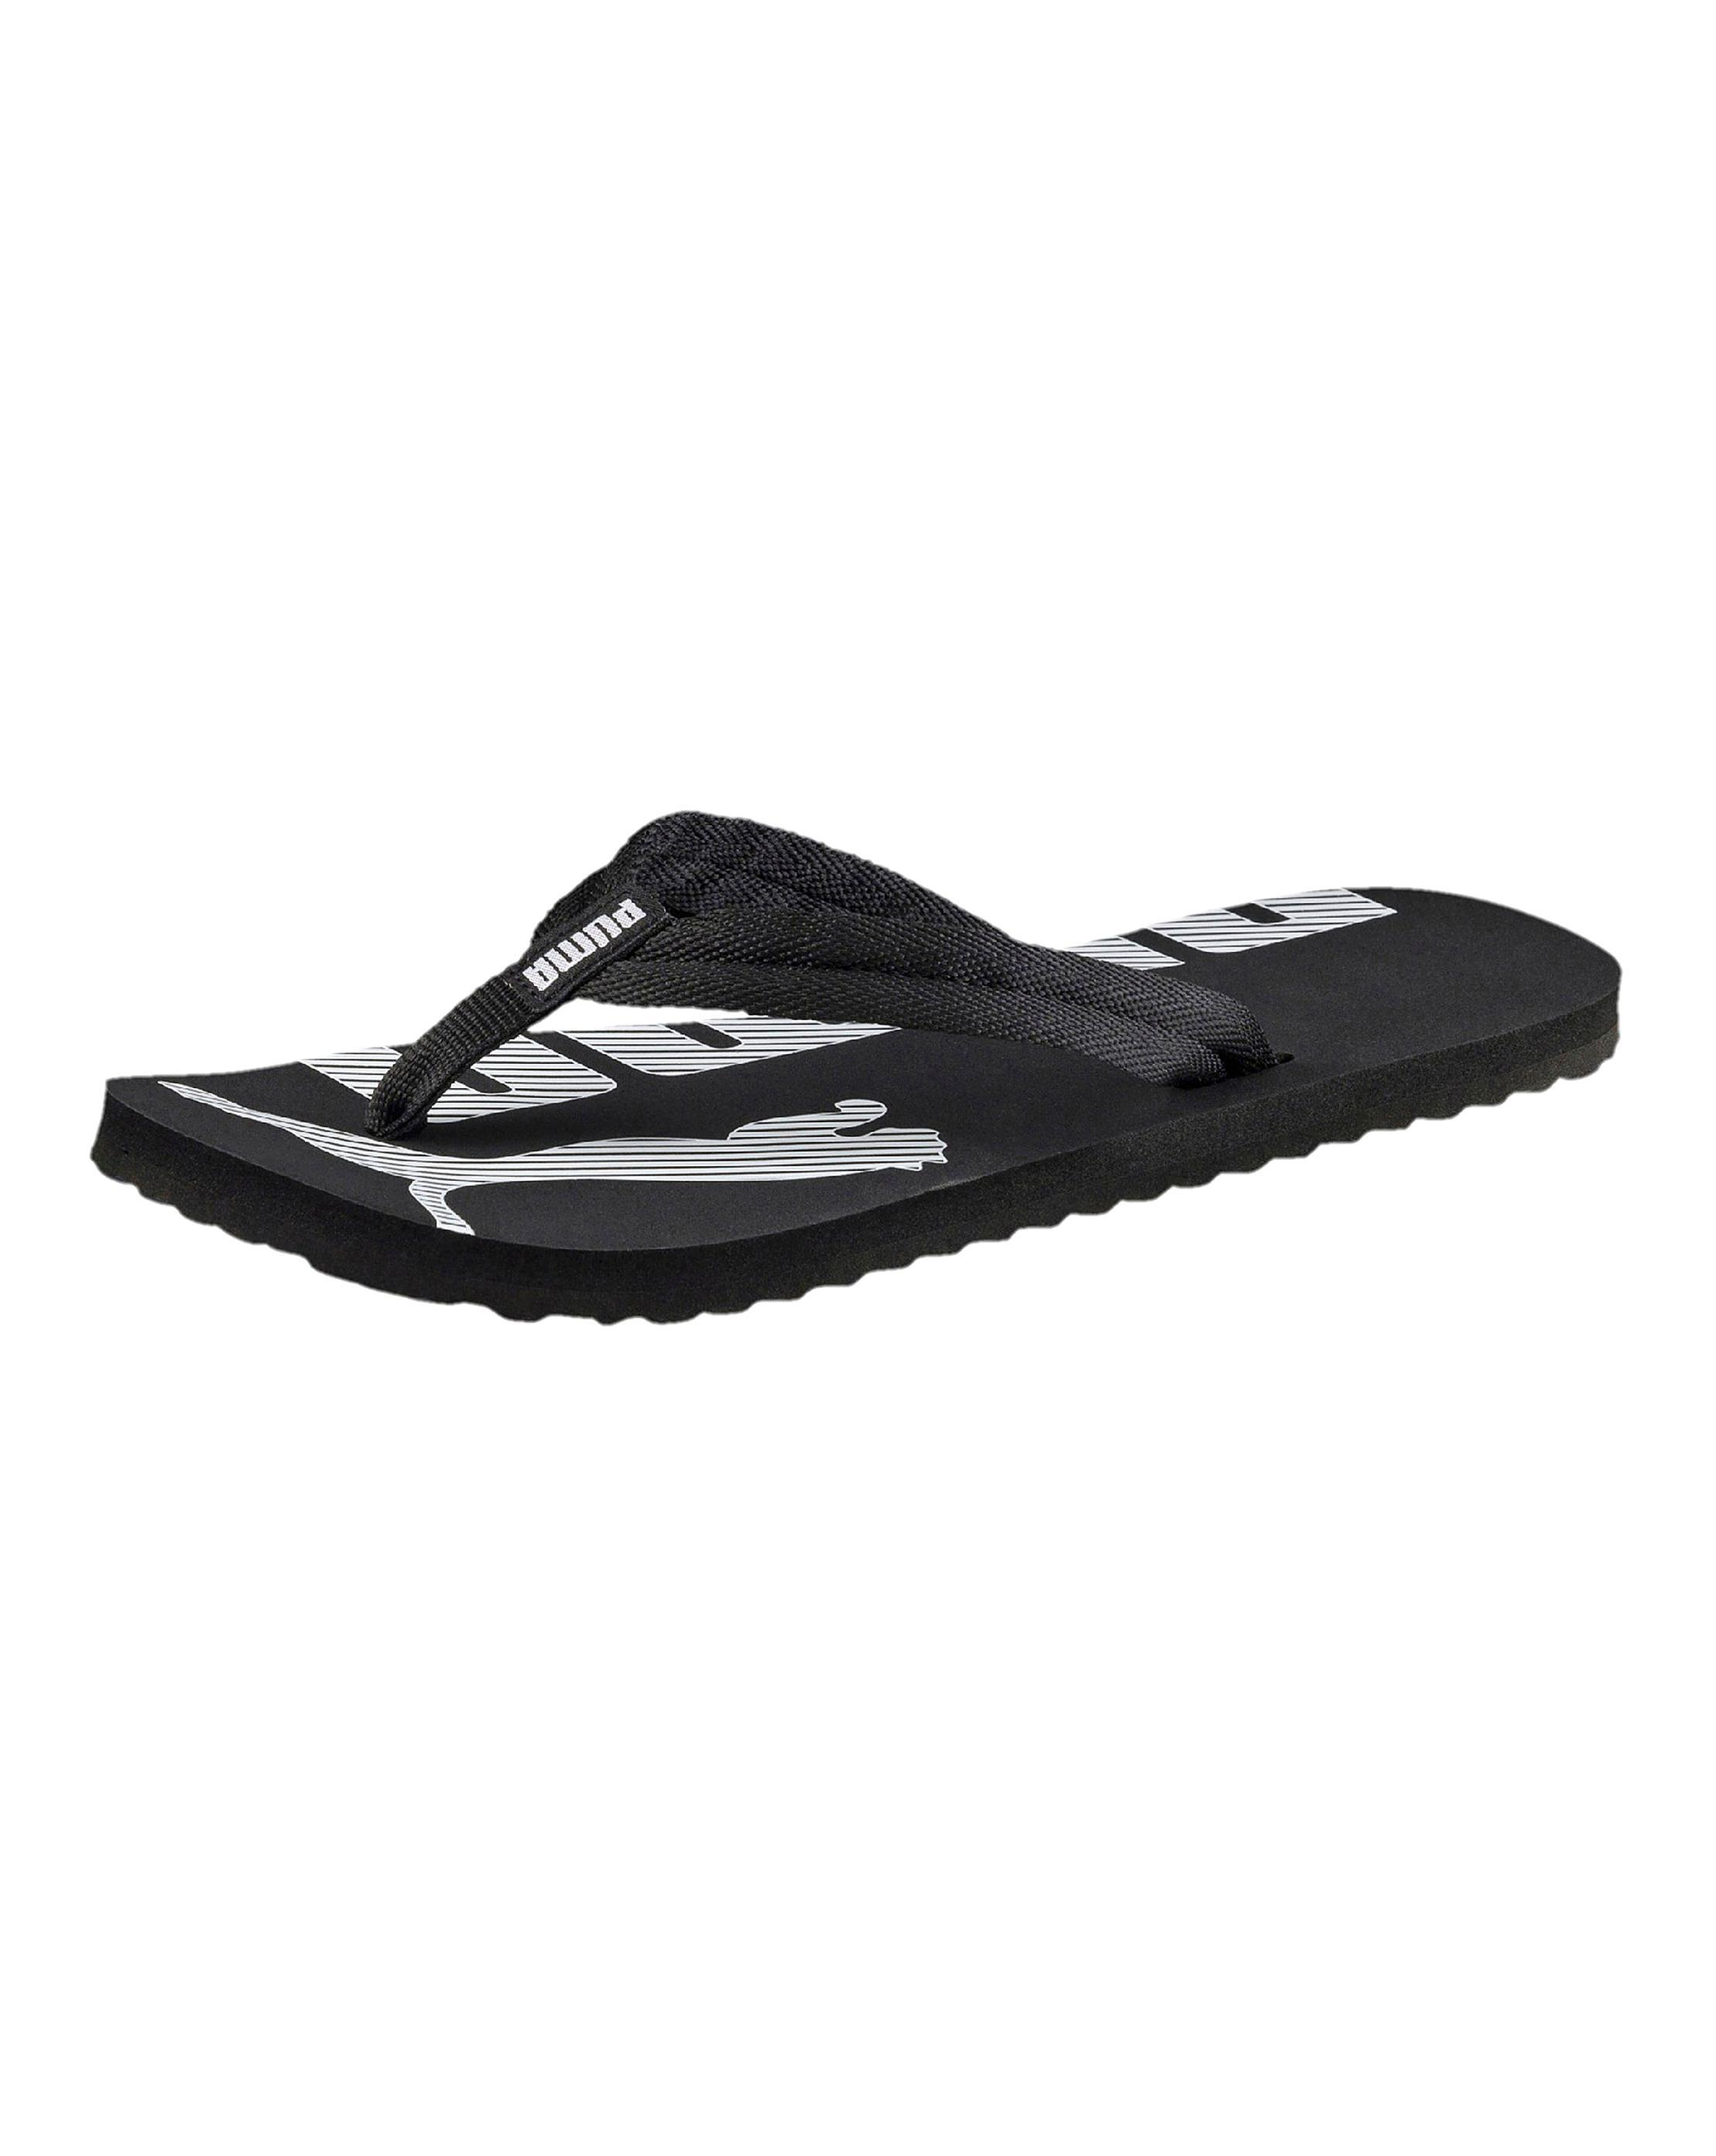 cc64da6f4 Lyst - Simply Be Puma Epic Flip Flop in Black for Men